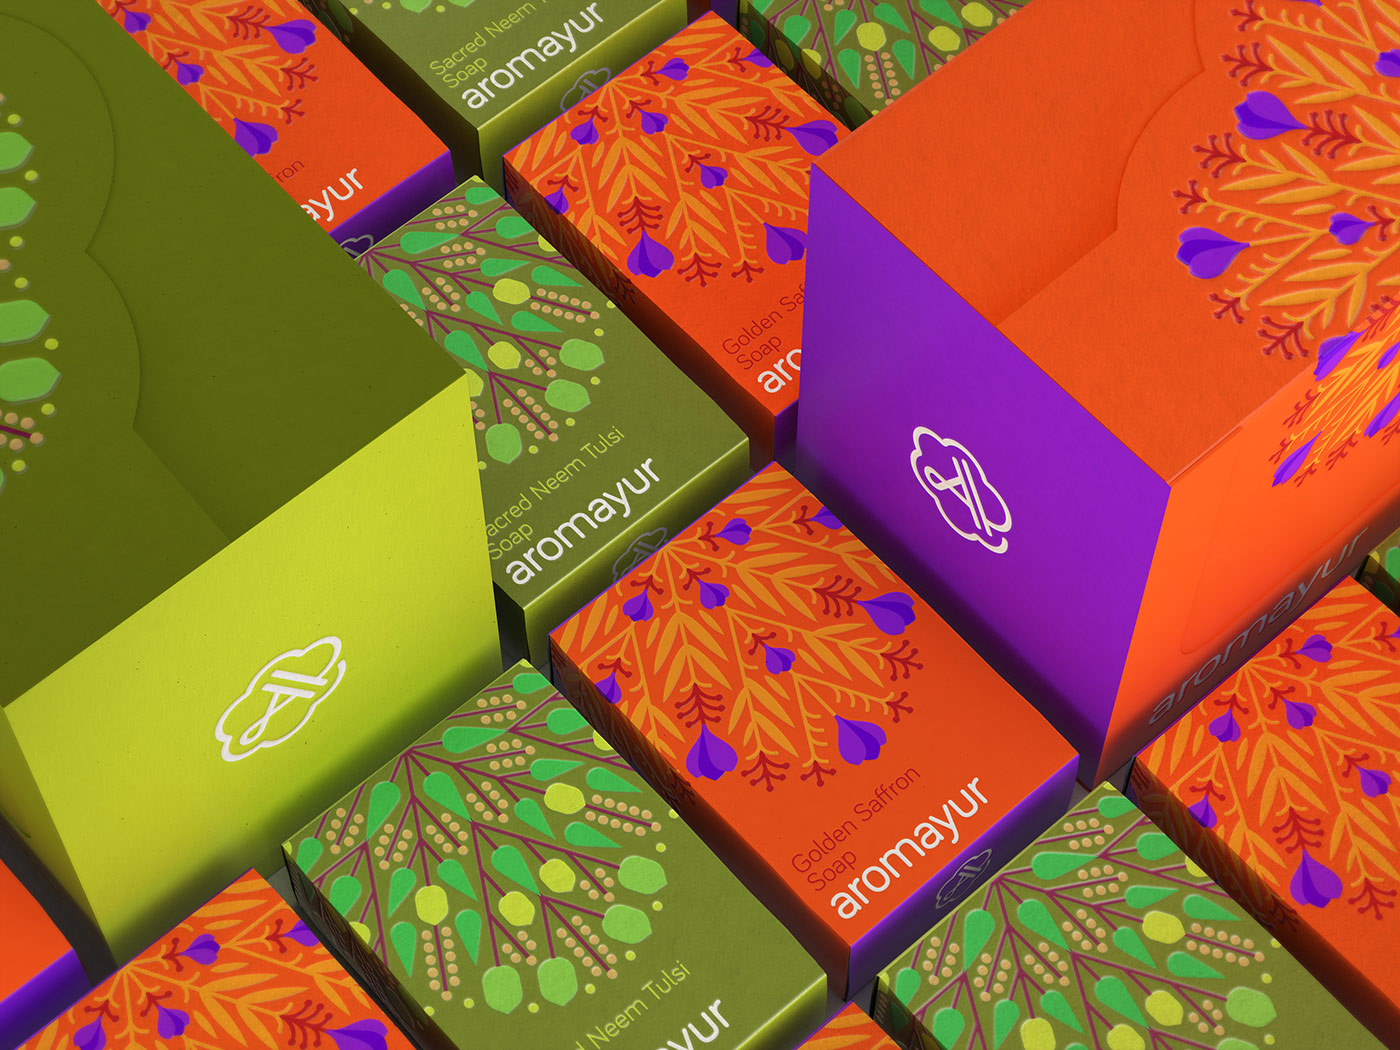 A Premium, Natural and Vibrant Brand - Identity & Packaging Design by Zooscope 6